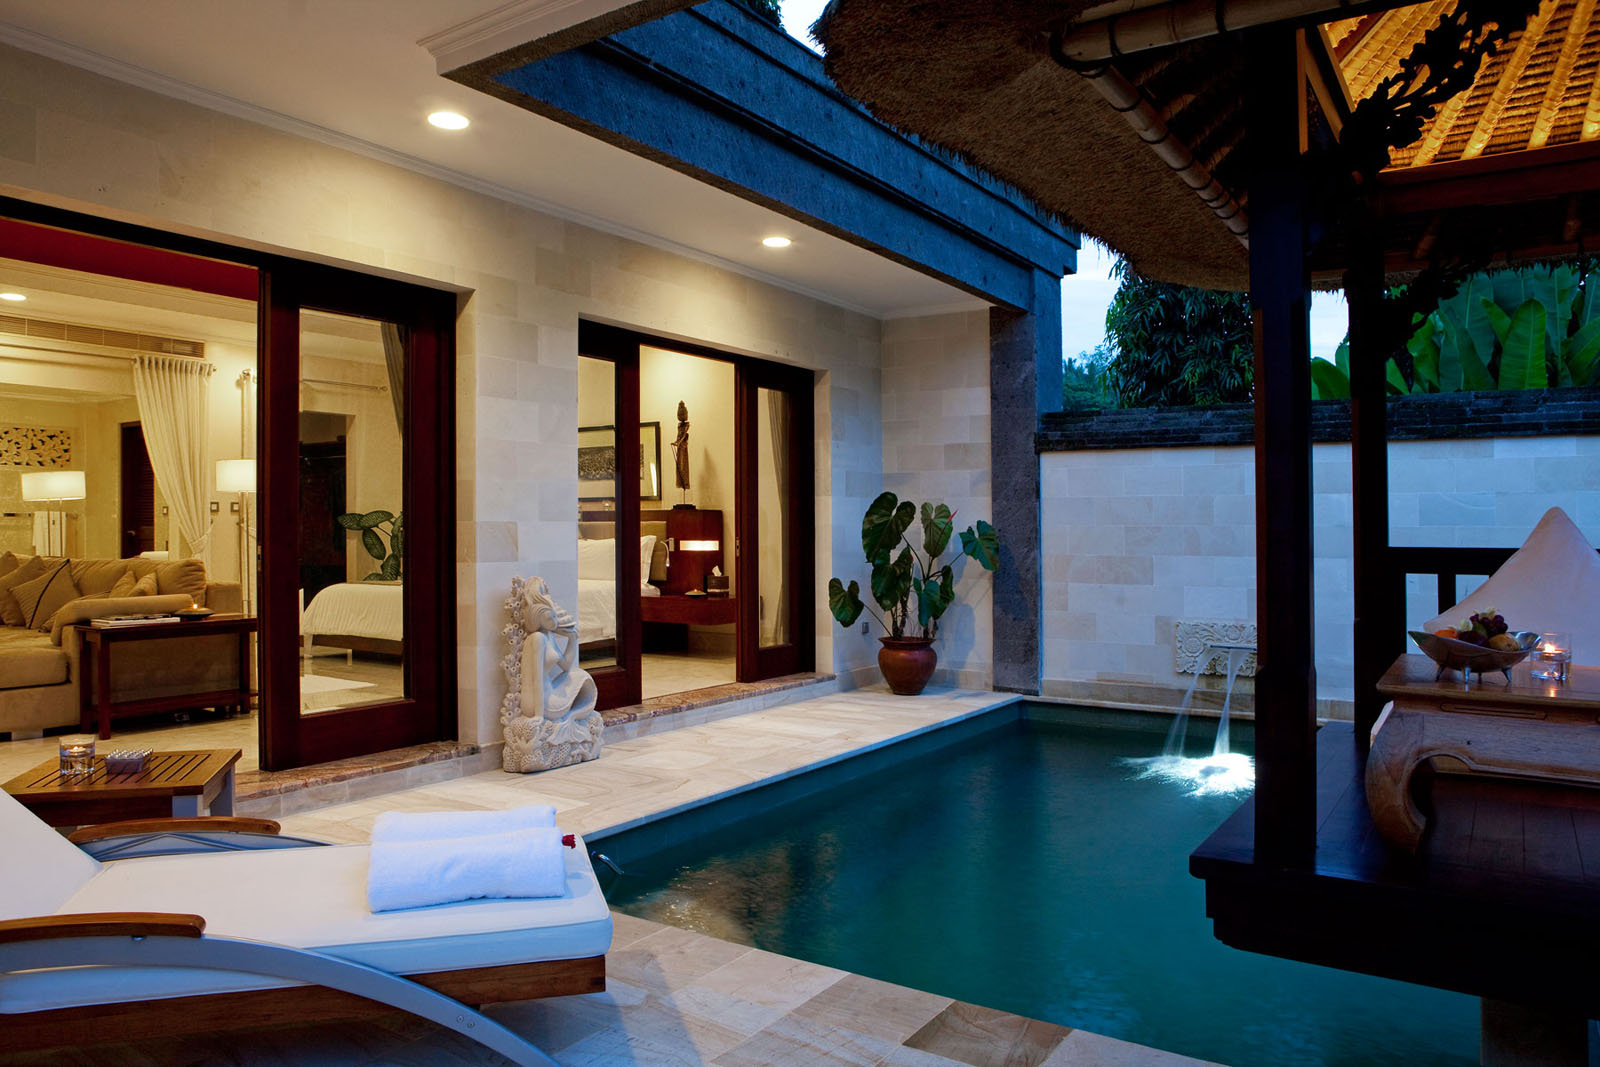 Romantic viceroy bali resort in ubud idesignarch for Swimming pool room decor